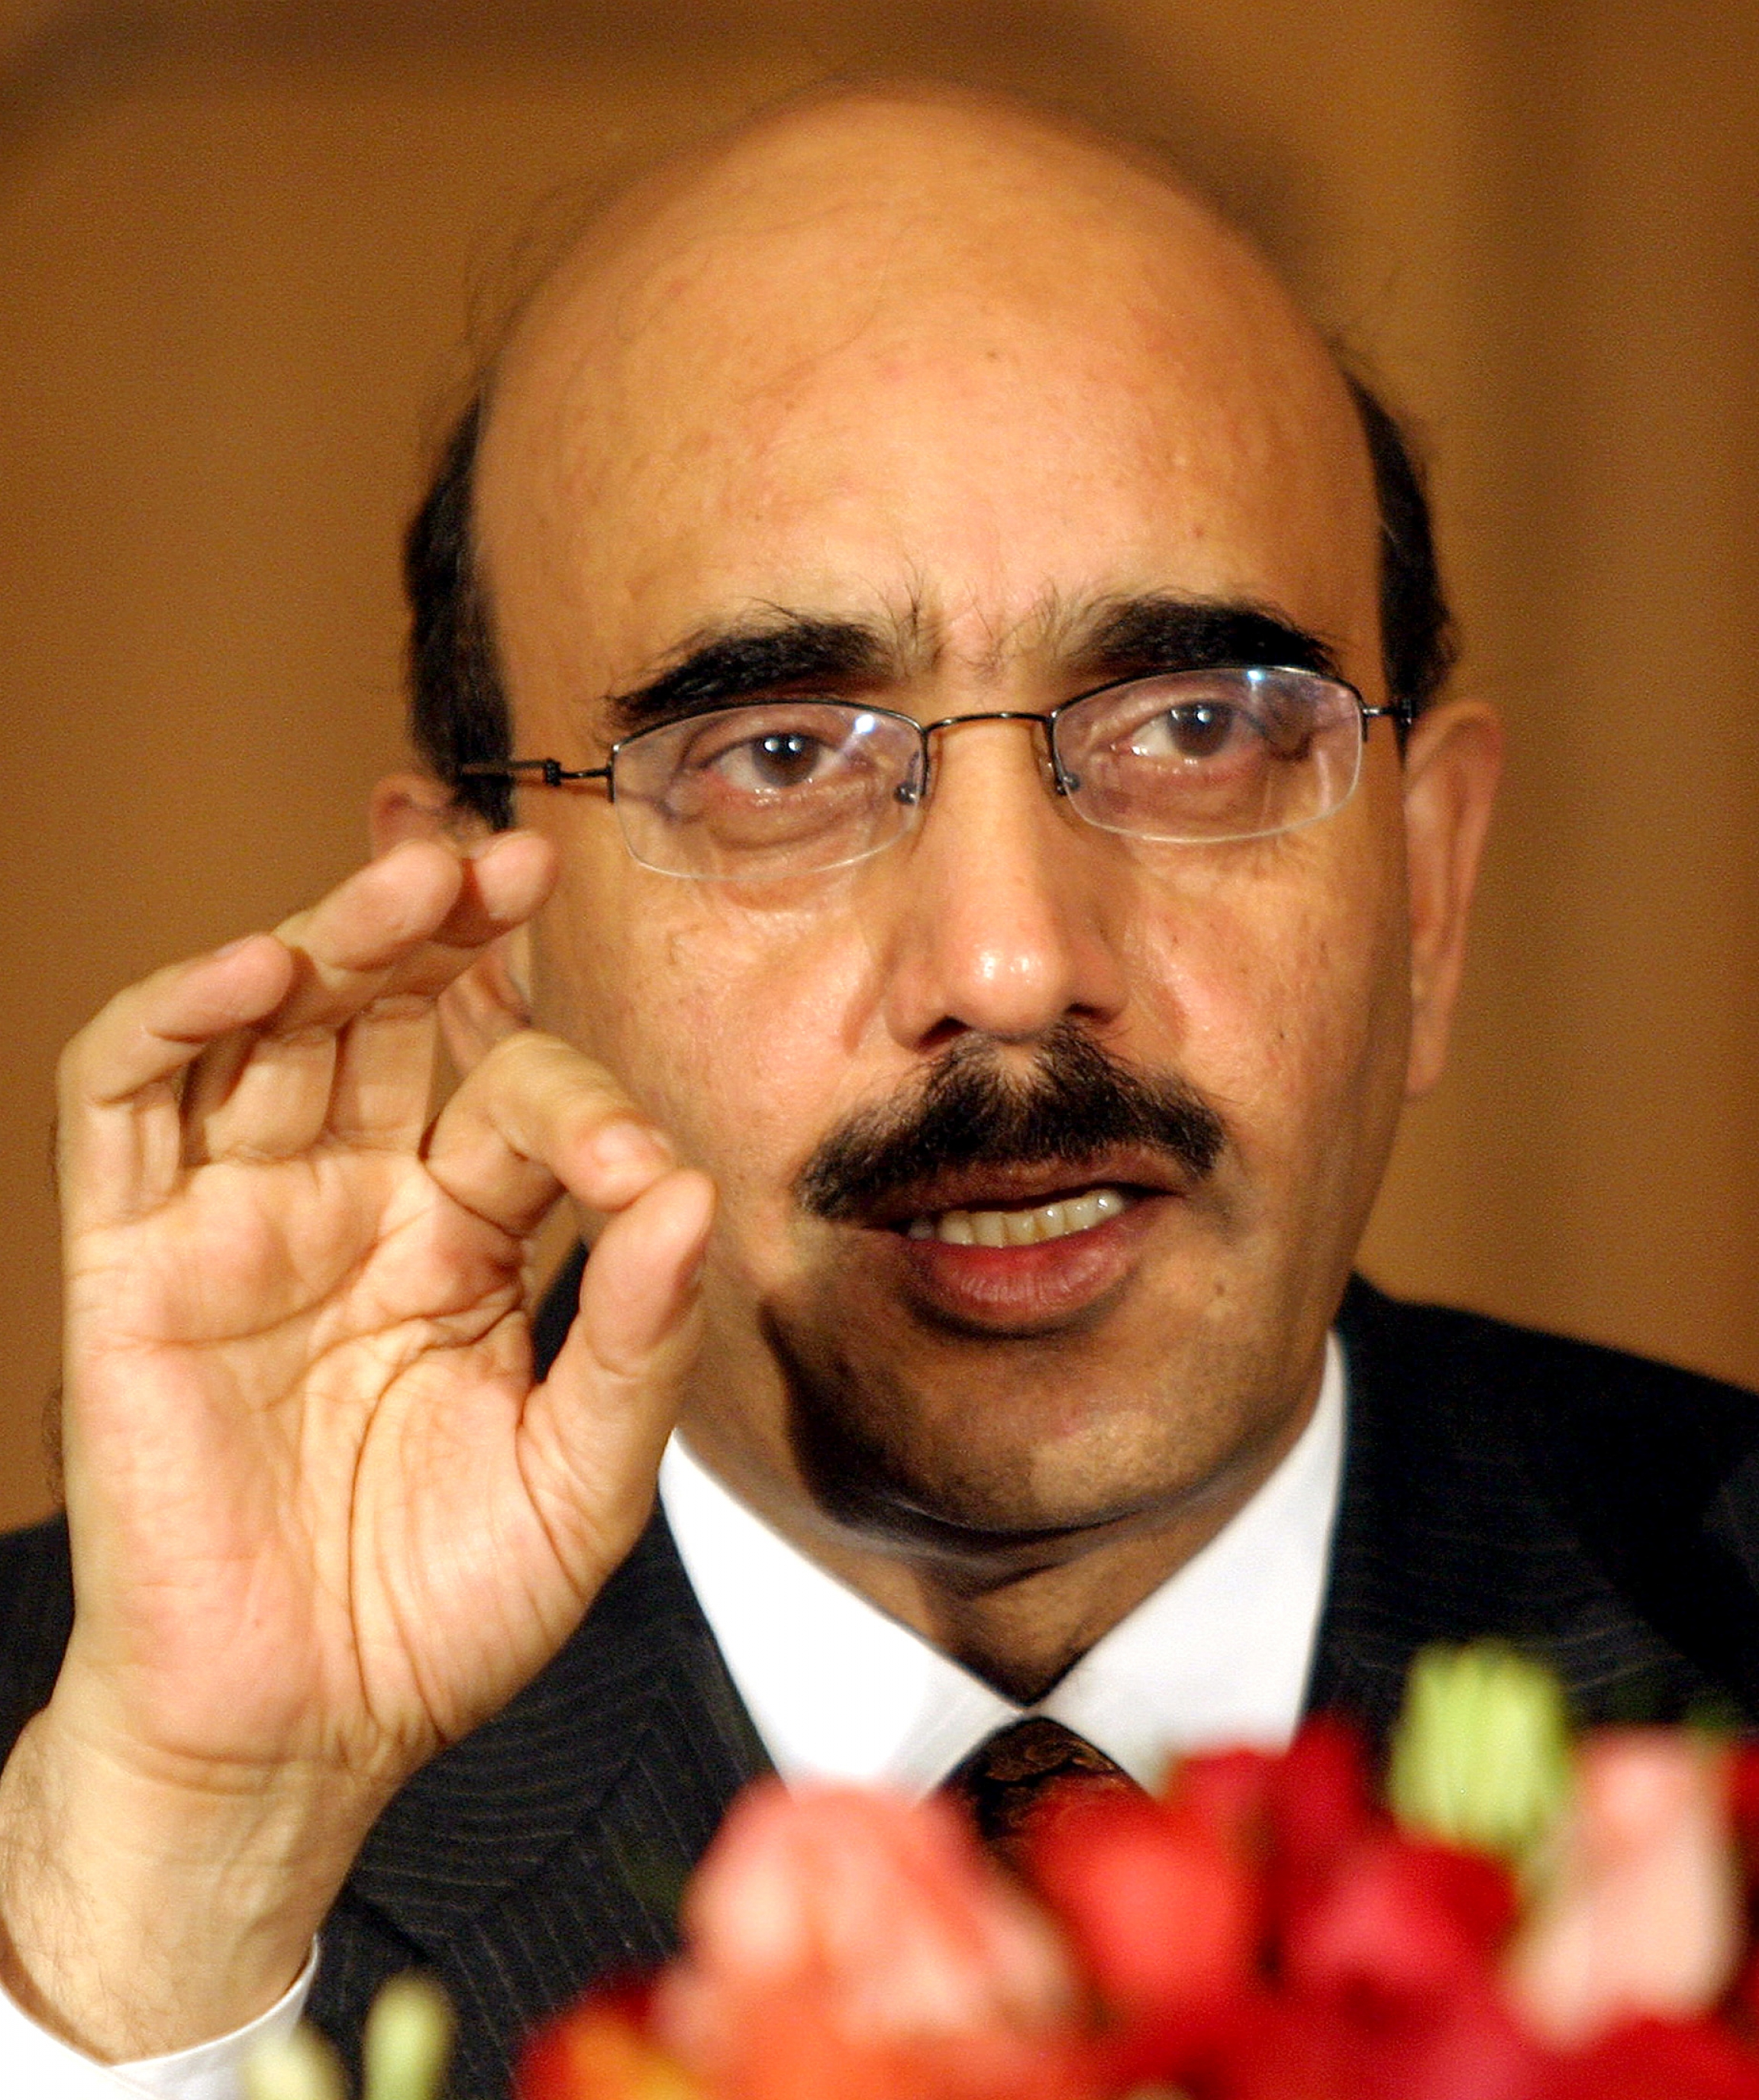 Sardar Masood Khan, president of the Pakistani side of divided Kashmir, gestures during a news conference at Pakistan's foreign ministry in Islamabad, December 23, 2004.